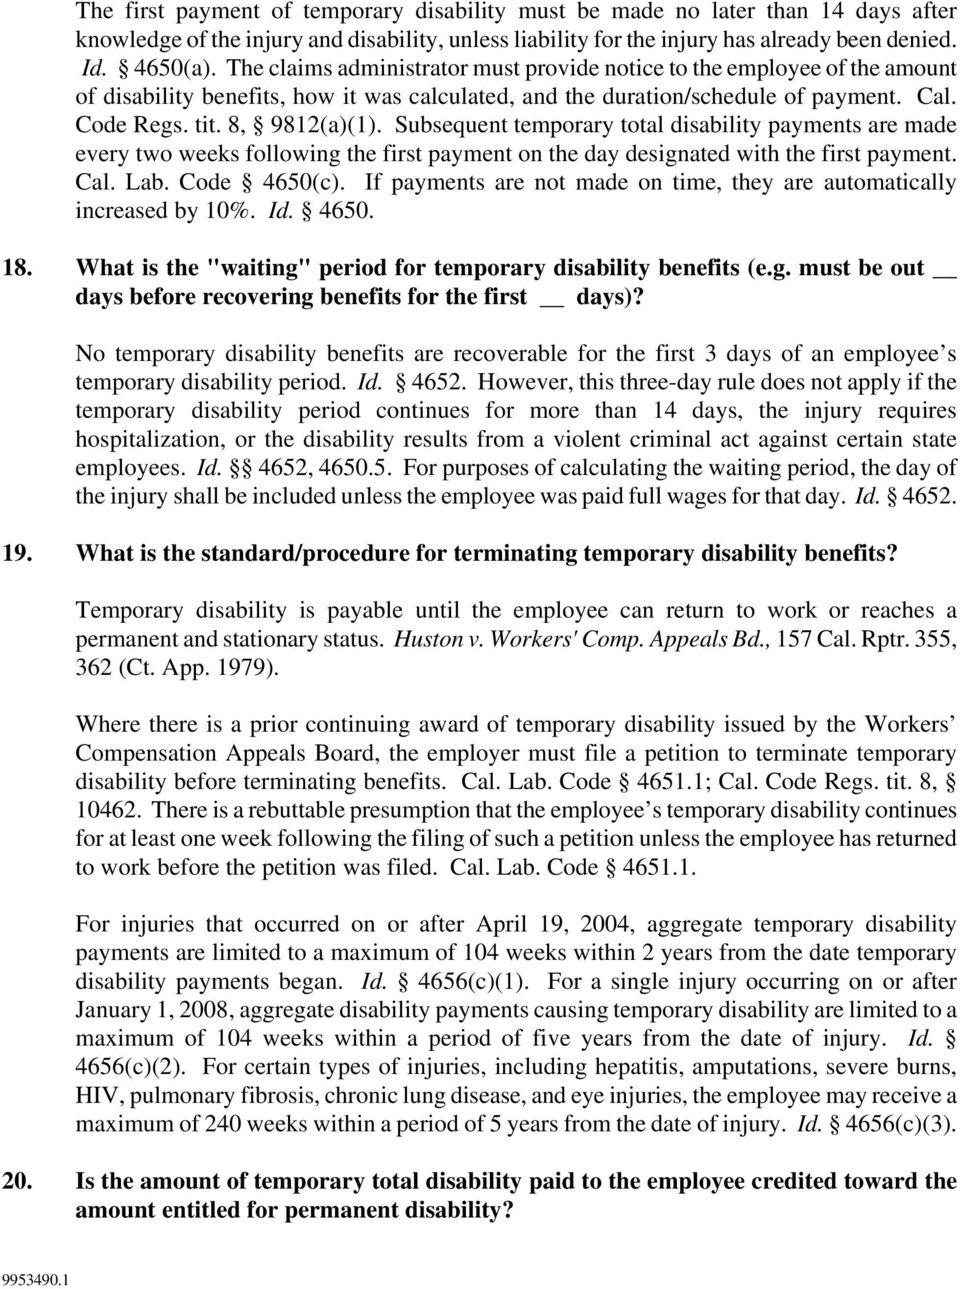 Subsequent temporary total disability payments are made every two weeks following the first payment on the day designated with the first payment. Cal. Lab. Code 4650(c).